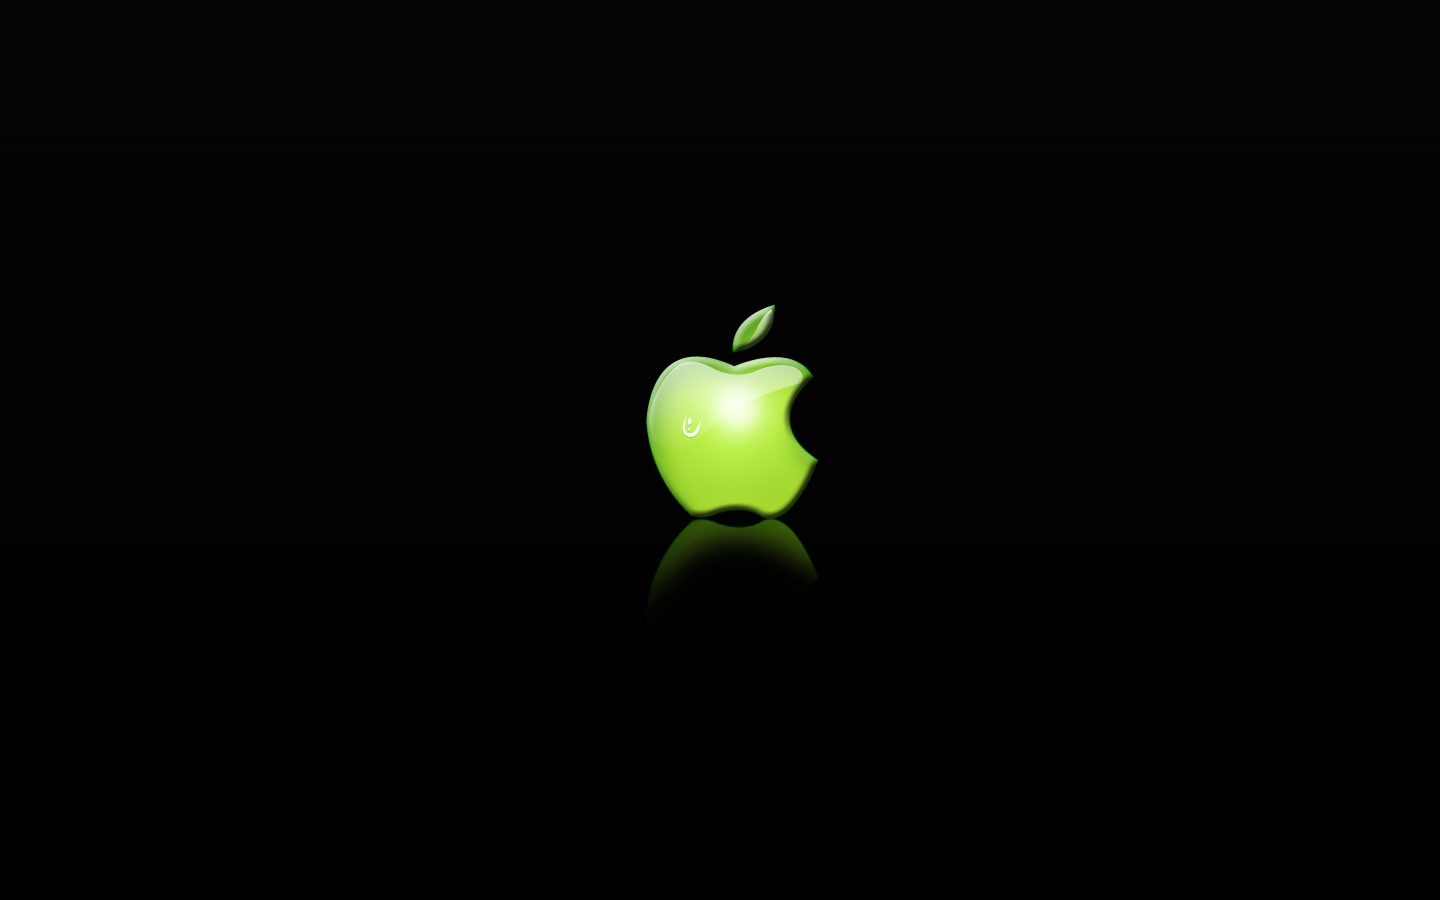 10 Best images about Apple on Pinterest | Desktop backgrounds